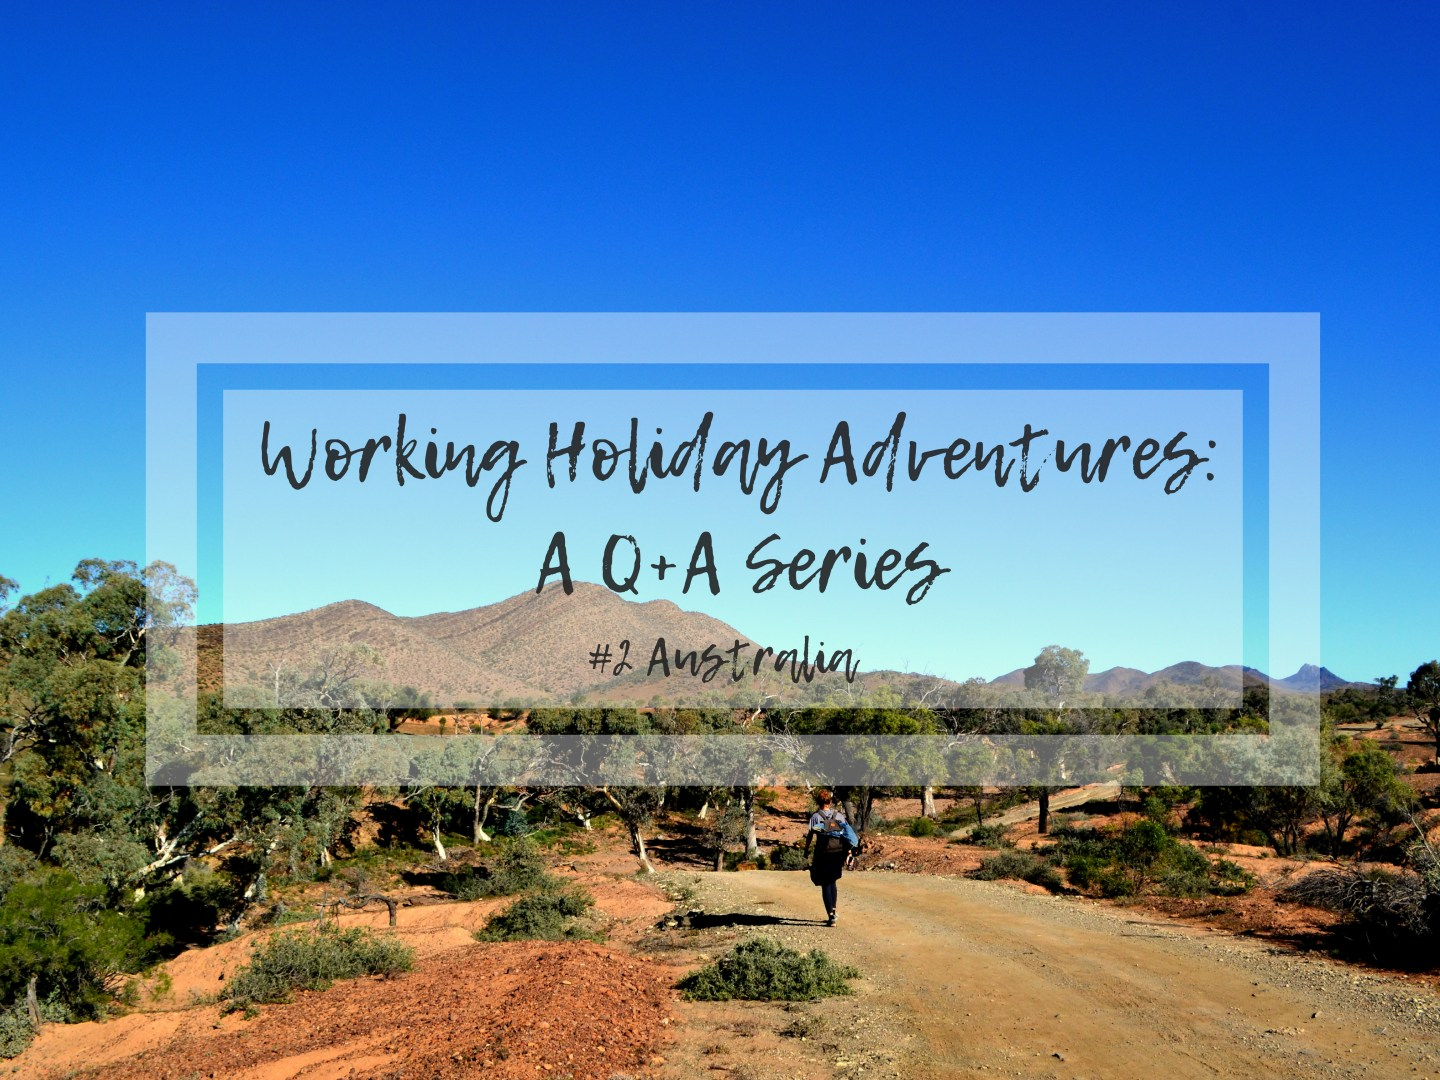 WORKING HOLIDAY ADVENTURES: Going Down Under